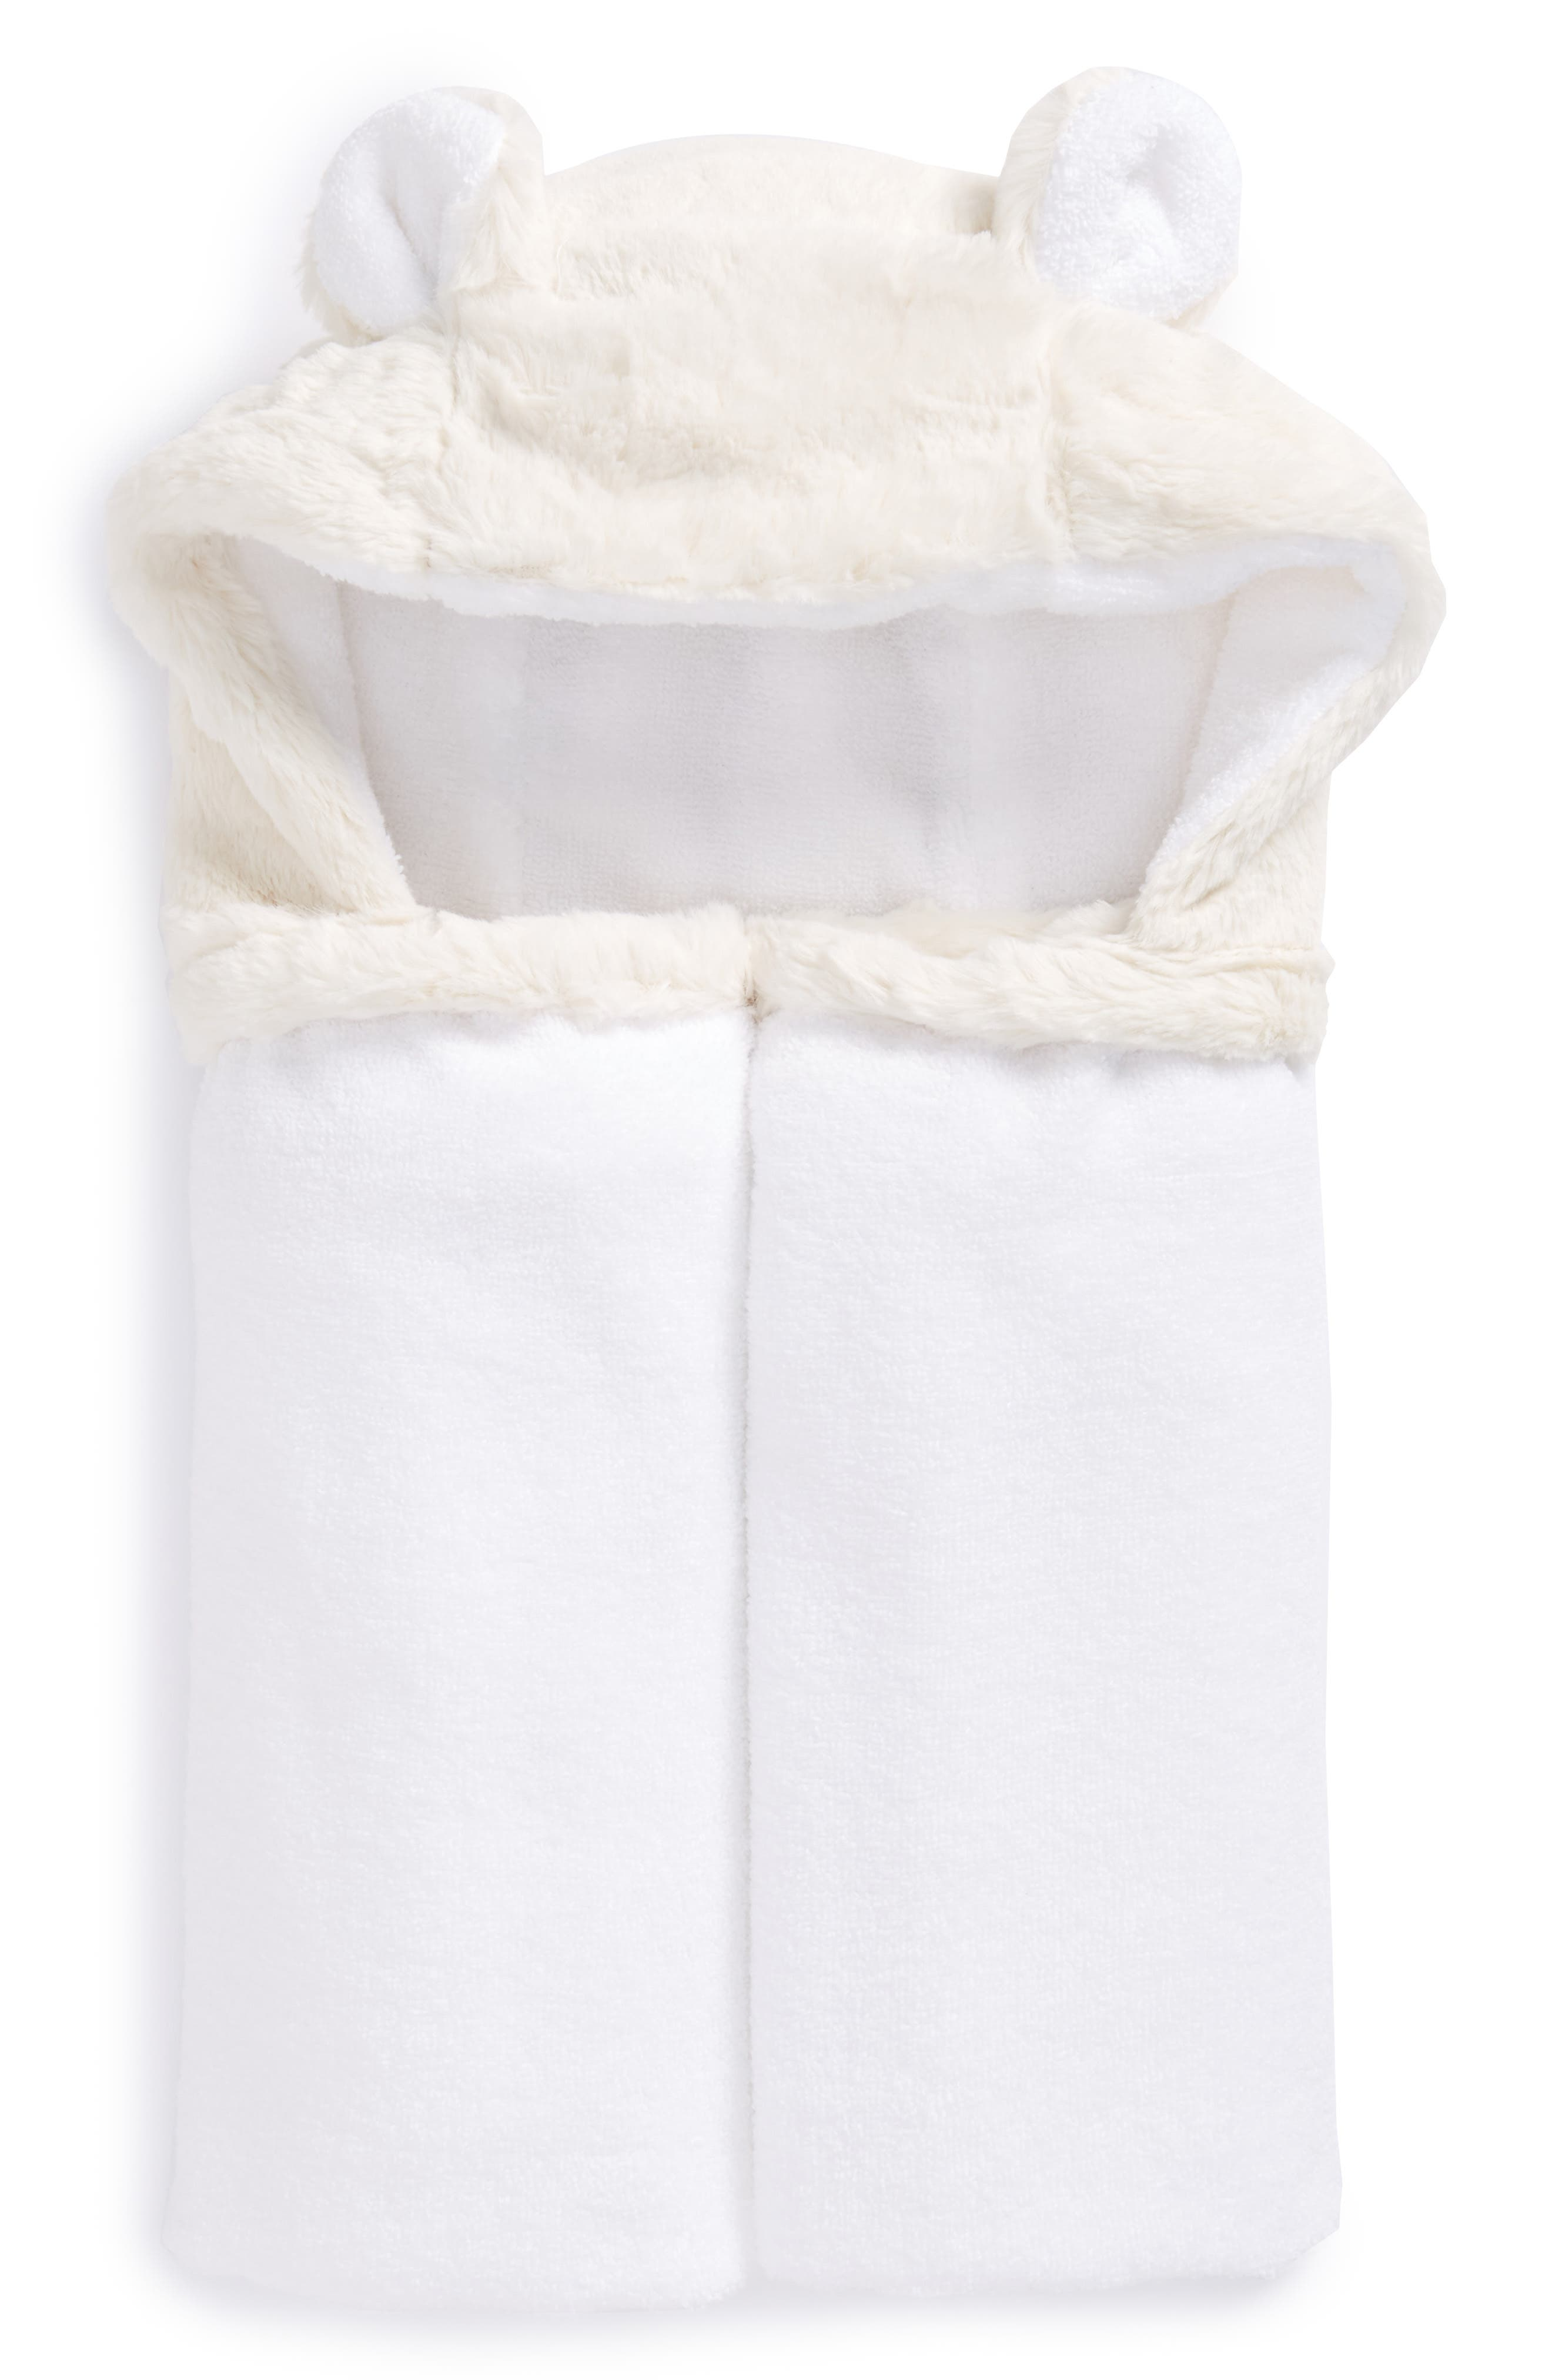 Luxe Hooded Towel,                             Main thumbnail 1, color,                             CREAM